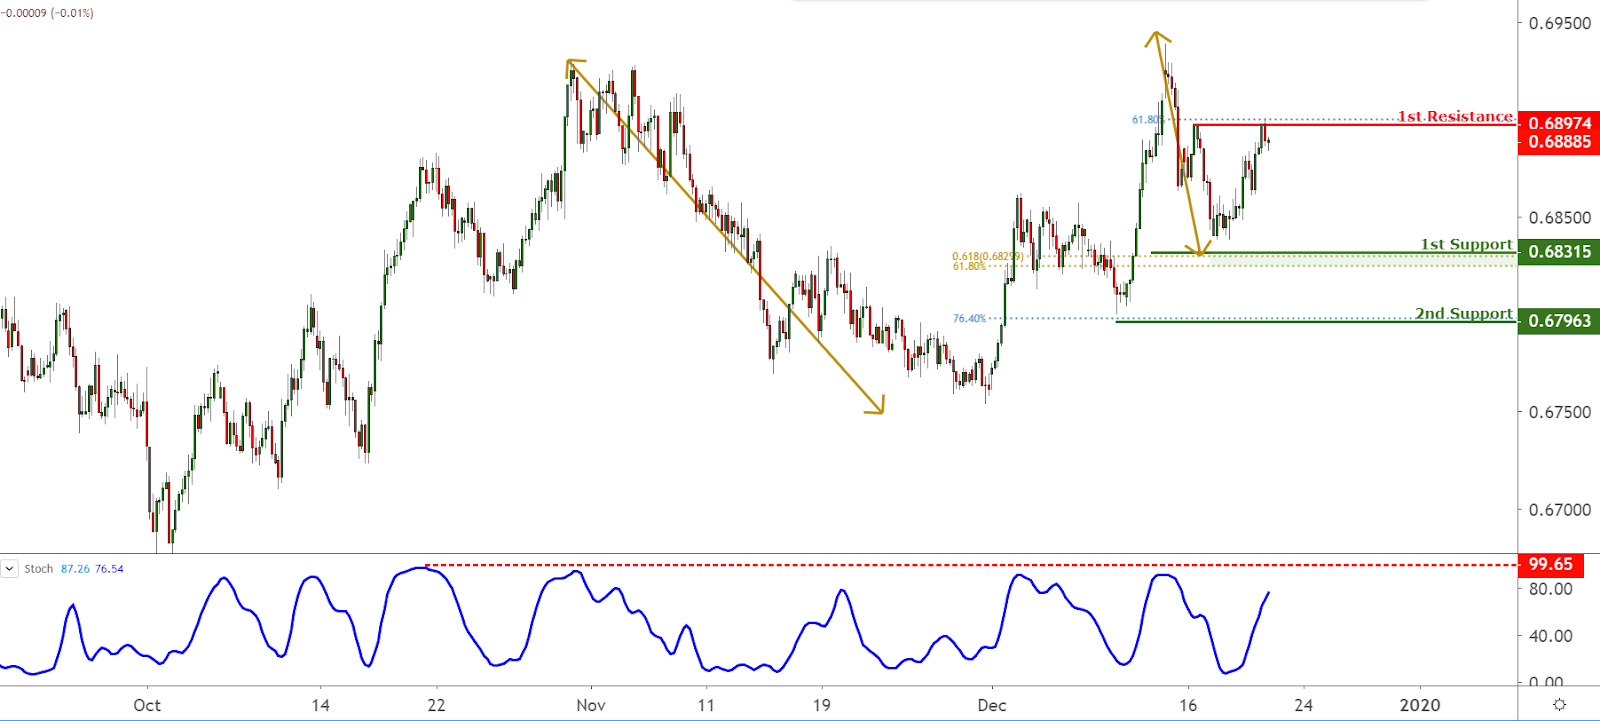 AUDUSD Chart, Source: TradingView.com